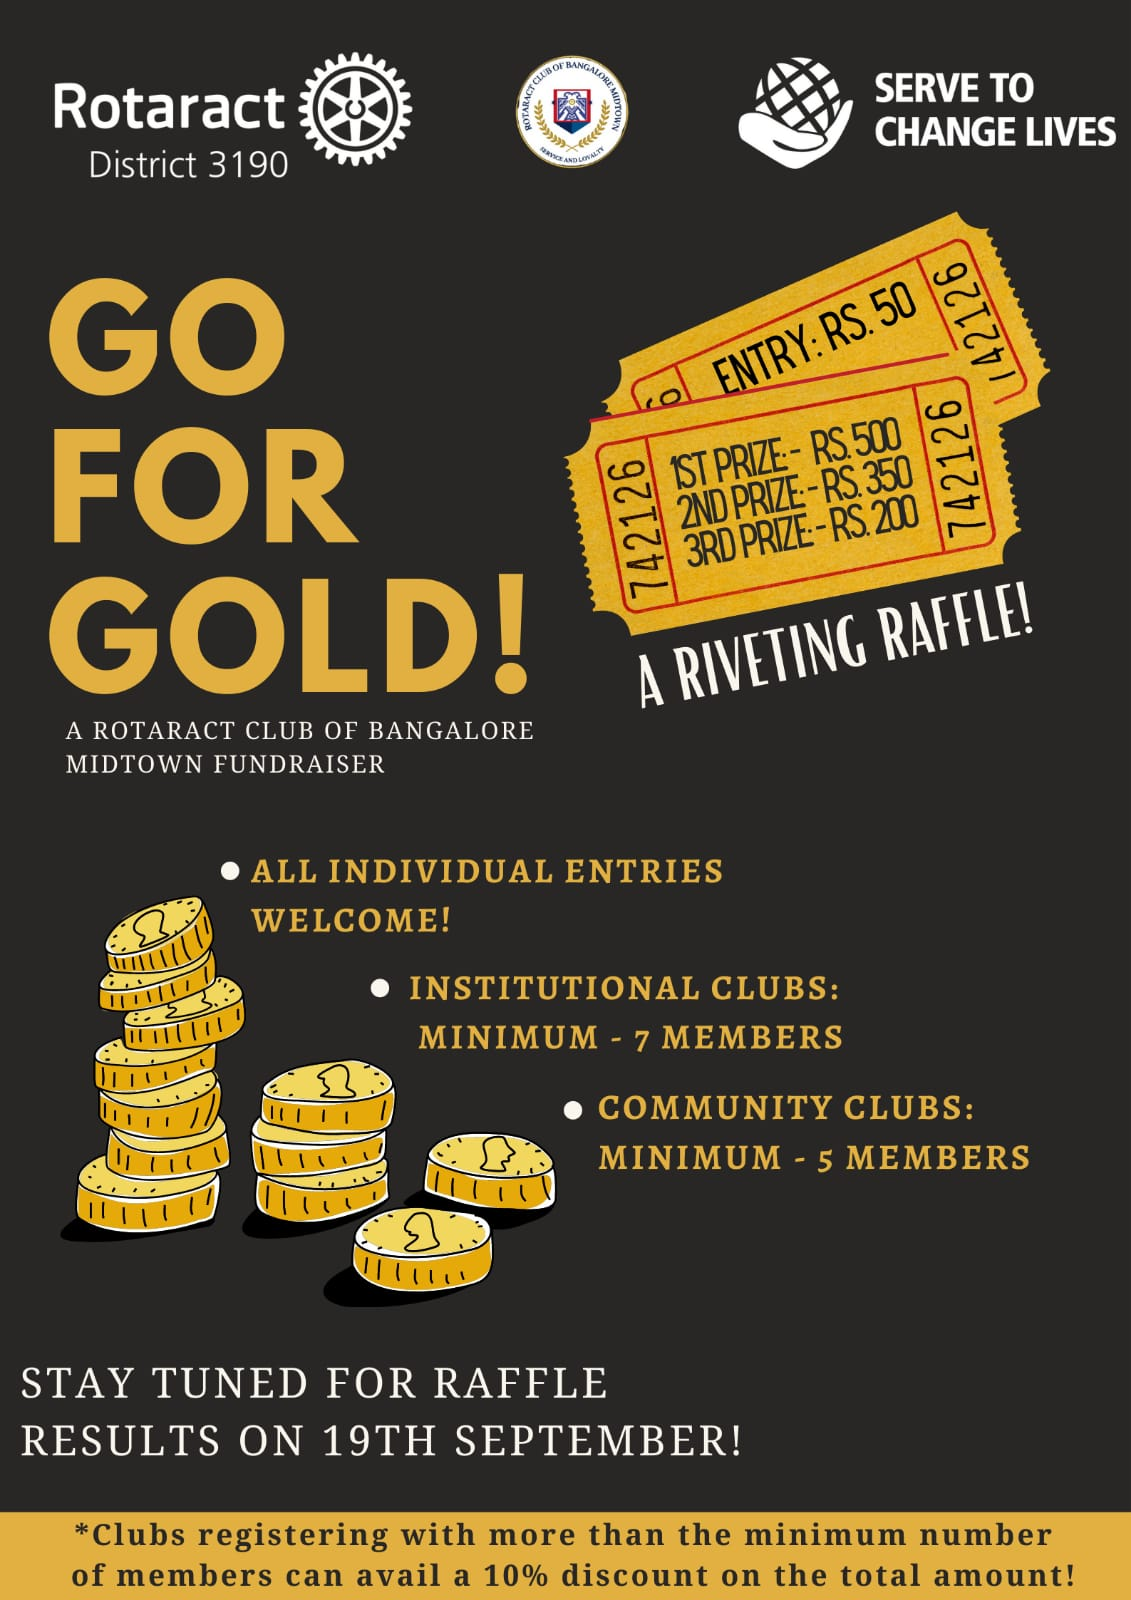 Rotaract club fundraiser project go for gold by Rotaract Club of Bangalore Midtown